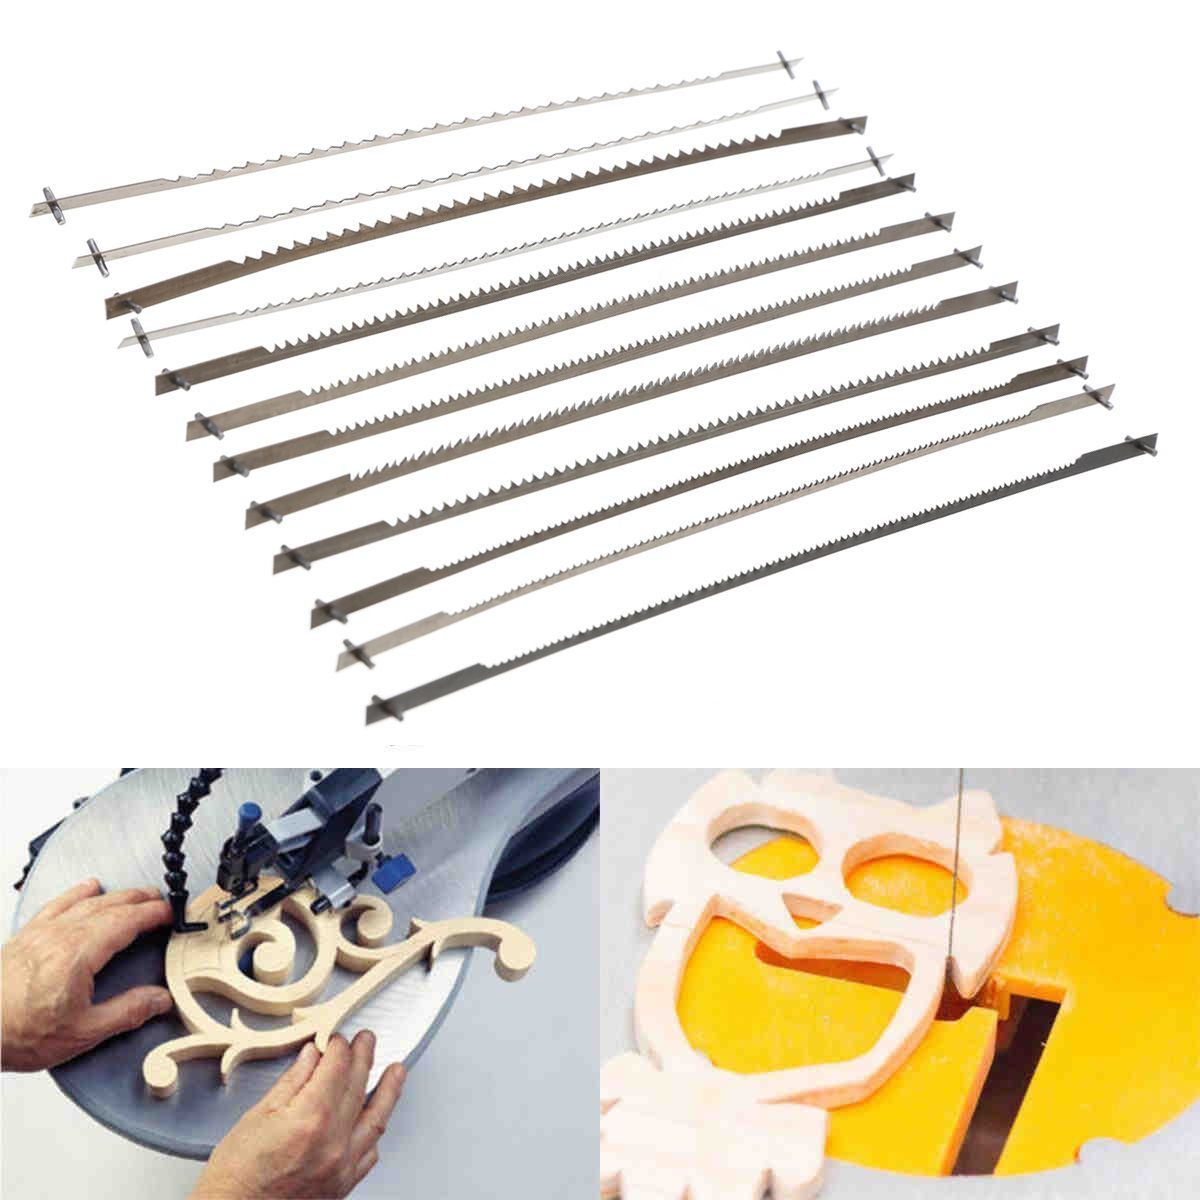 FGHGF 12x Pinned Scroll Saw Blades Woodworking Power Tools Accessories 127mm Black jl lithe fold make up cosmetic mirror w 8 led light black